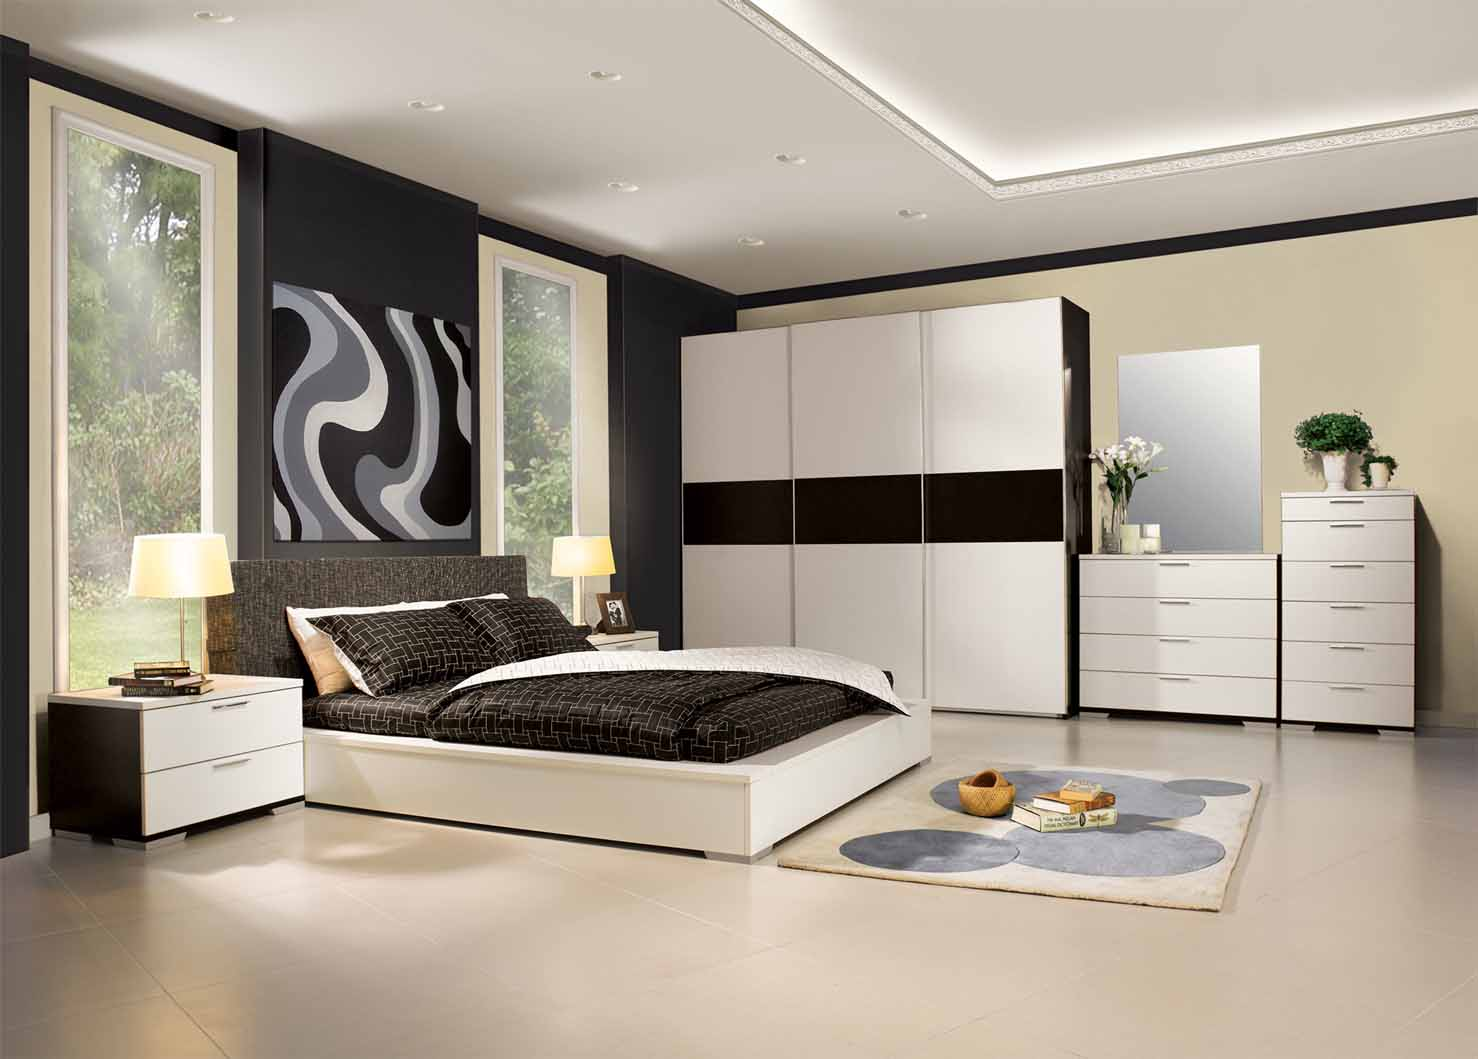 25 Best Bedroom Designs Ideas - The WoW Style on Room Decore  id=64220